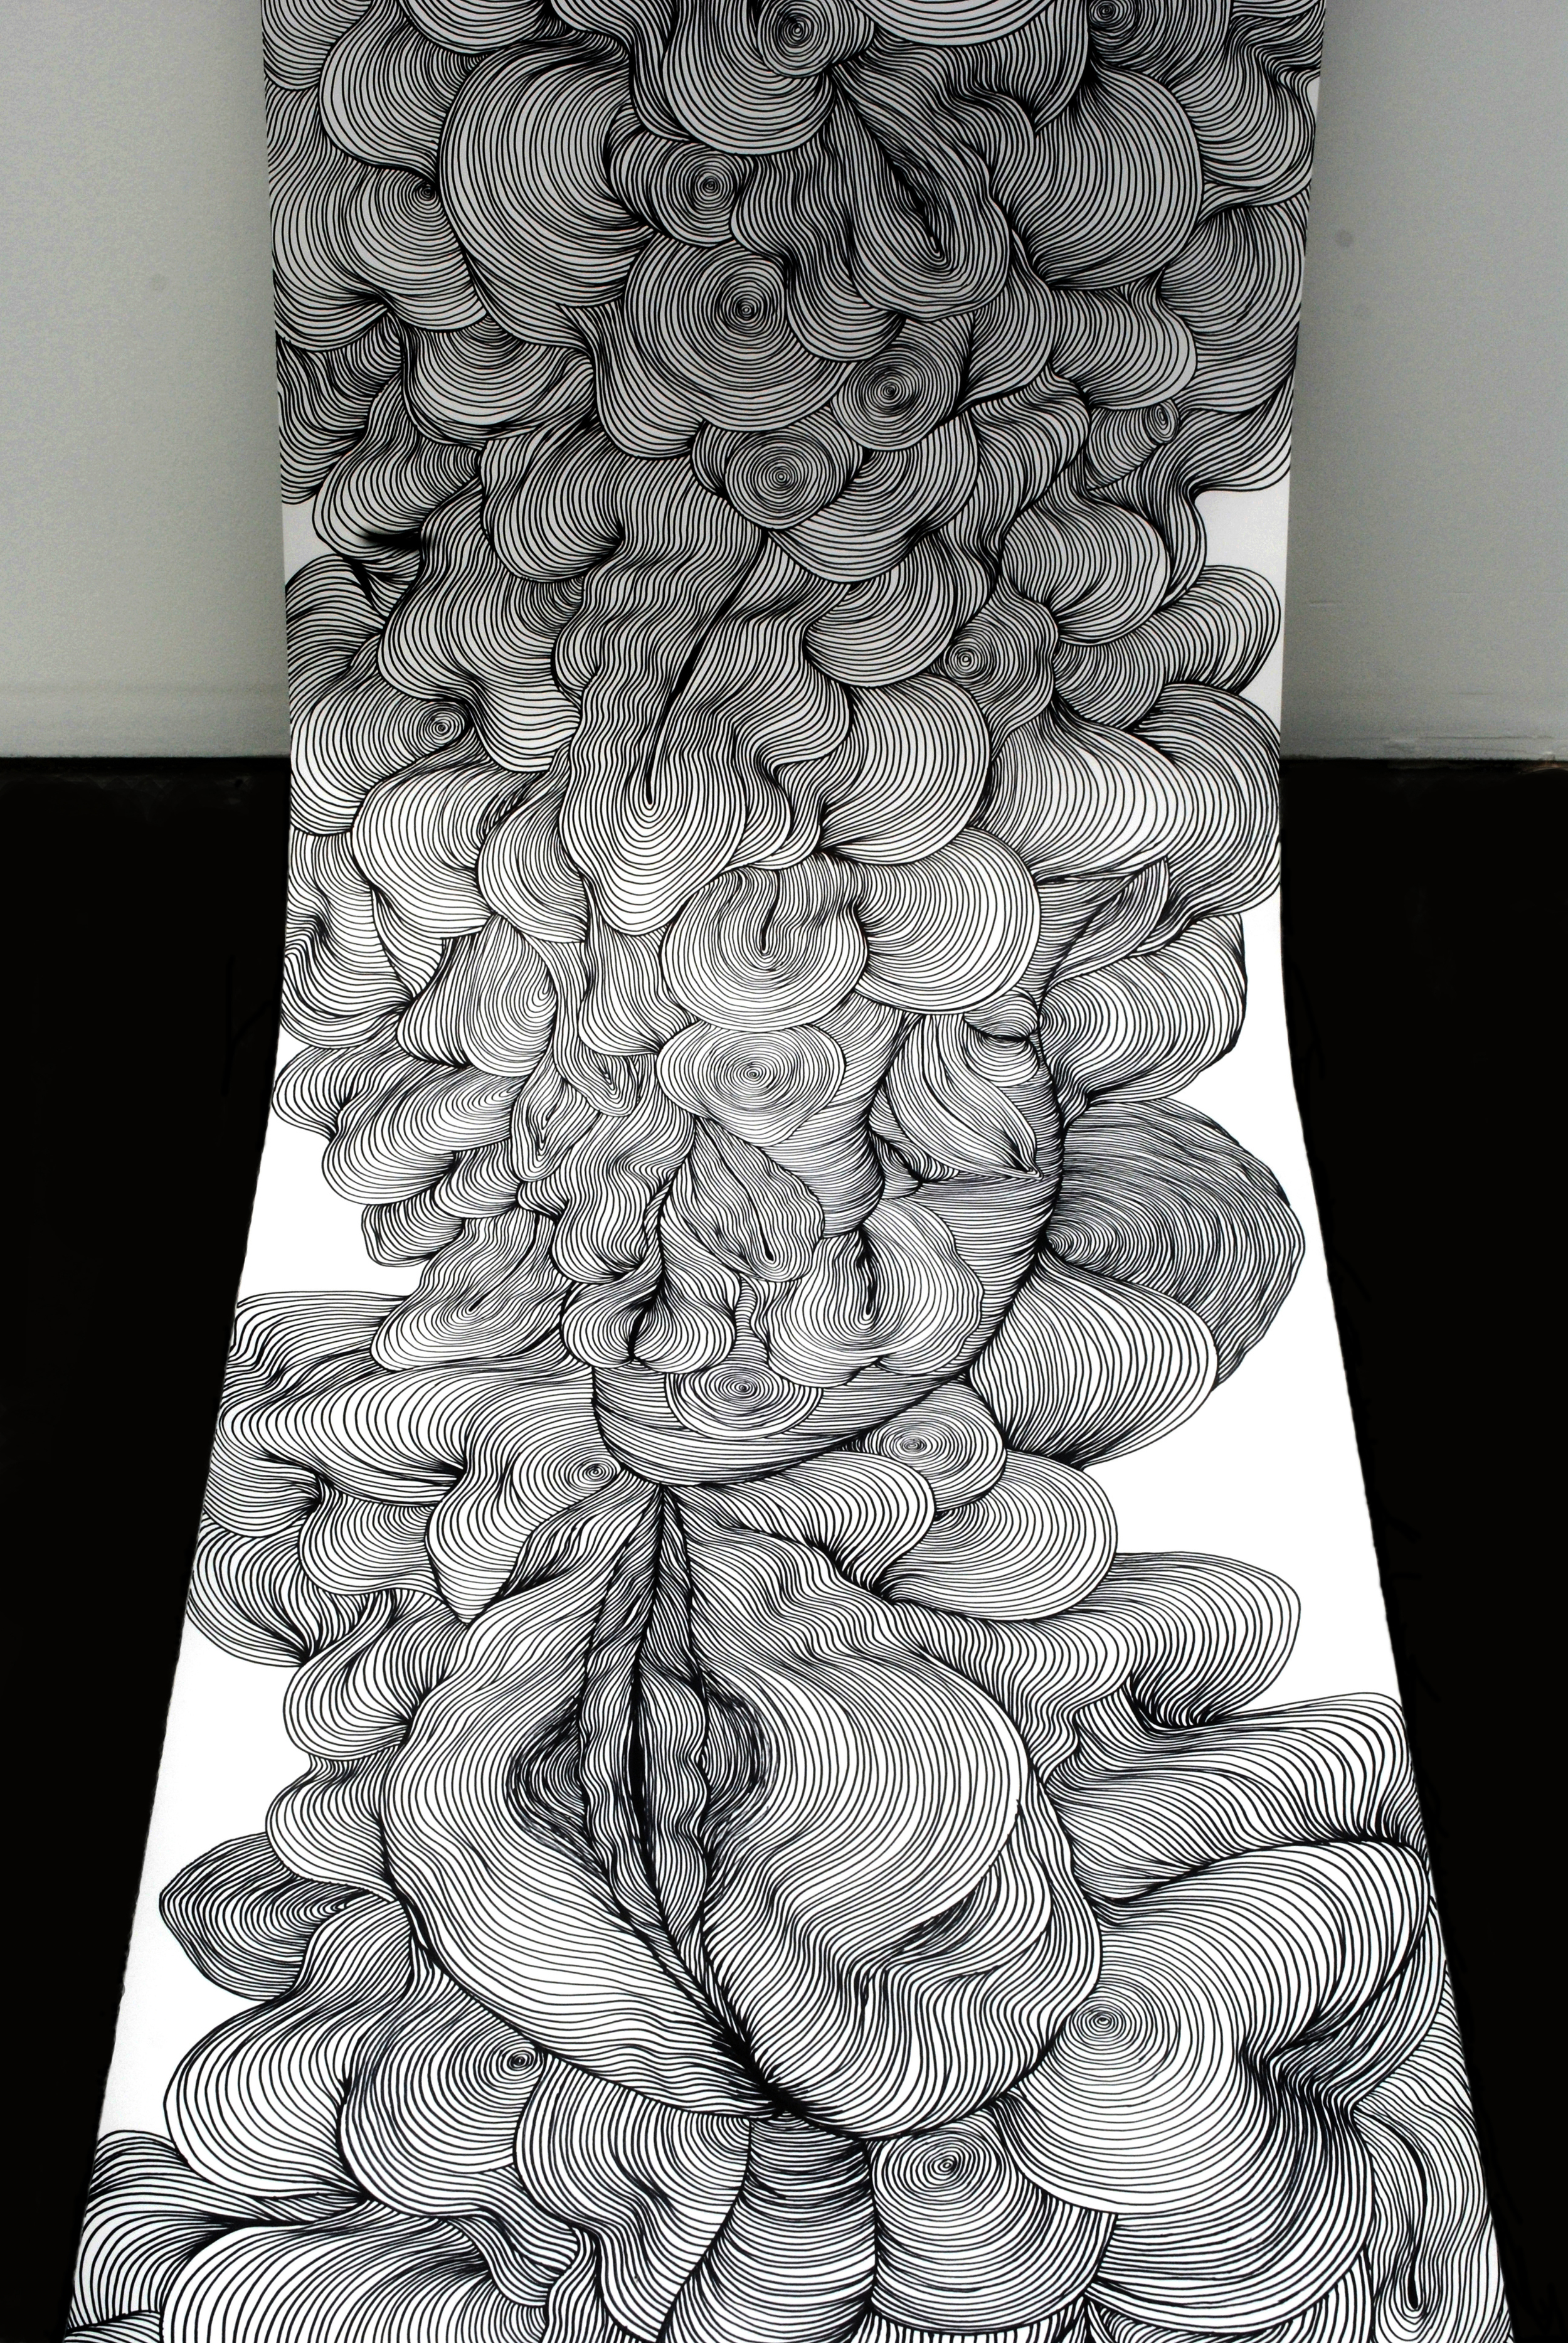 Untitled,  marker on paper, 24 inches x 10 yards, 2010